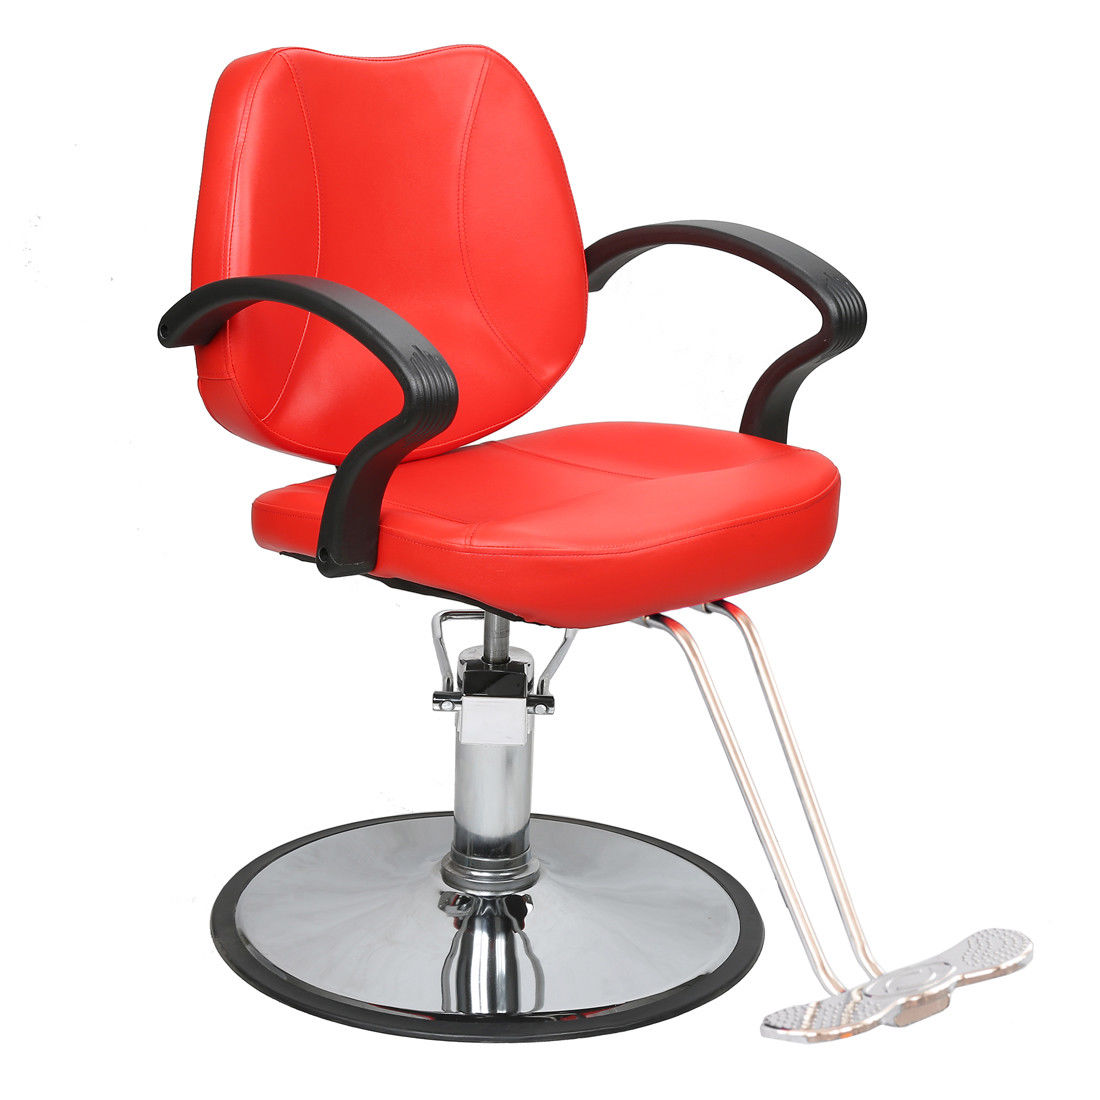 Hydraulic Chairs Classic Hydraulic Barber Chair Salon Beauty Spa Chair 8801